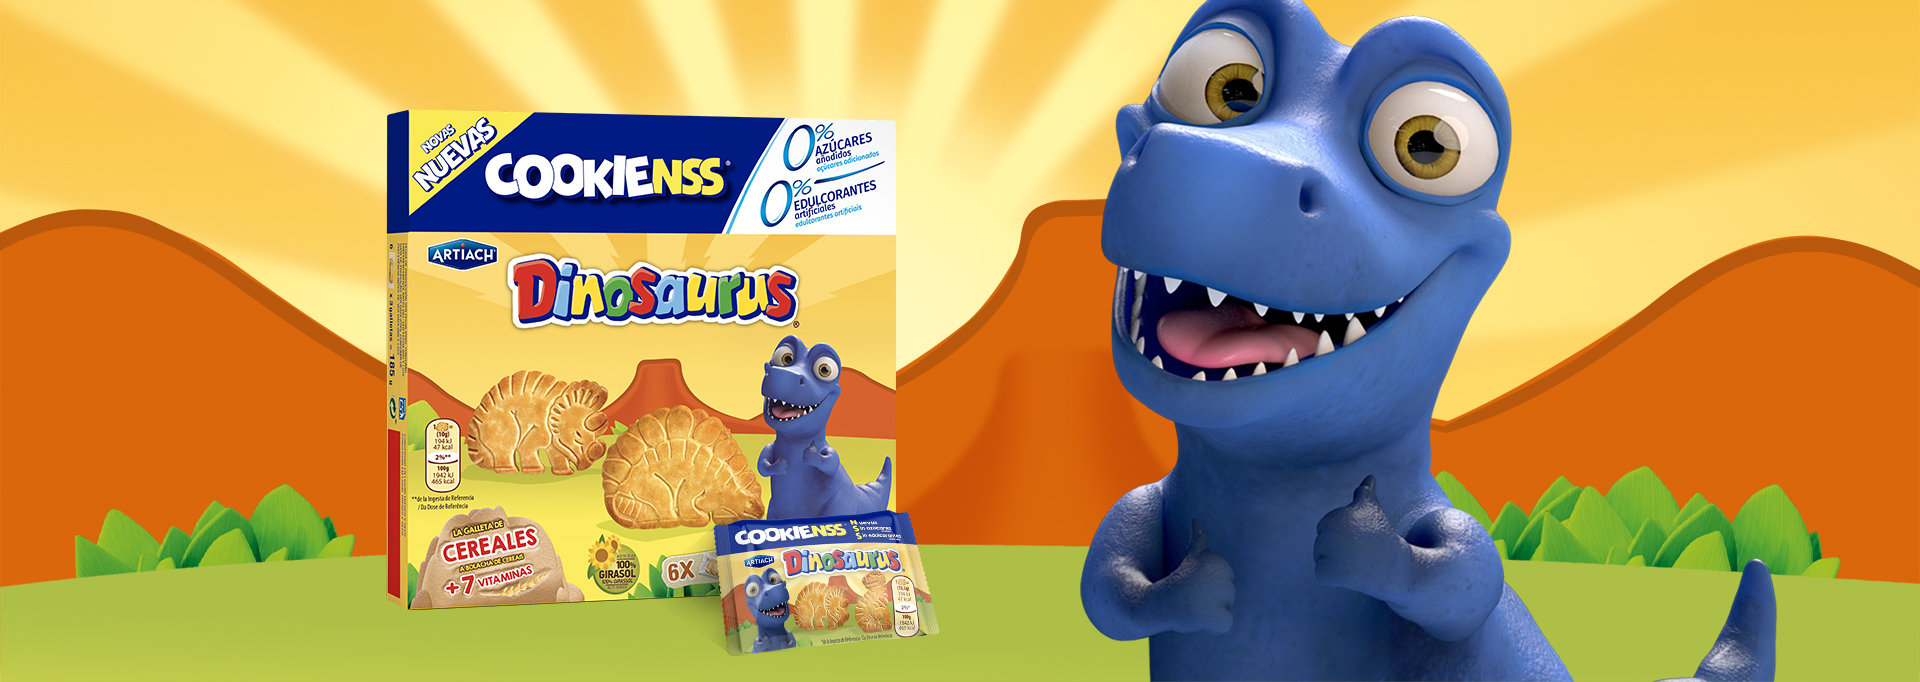 Galletas de Dinosaurus COOKIENSS